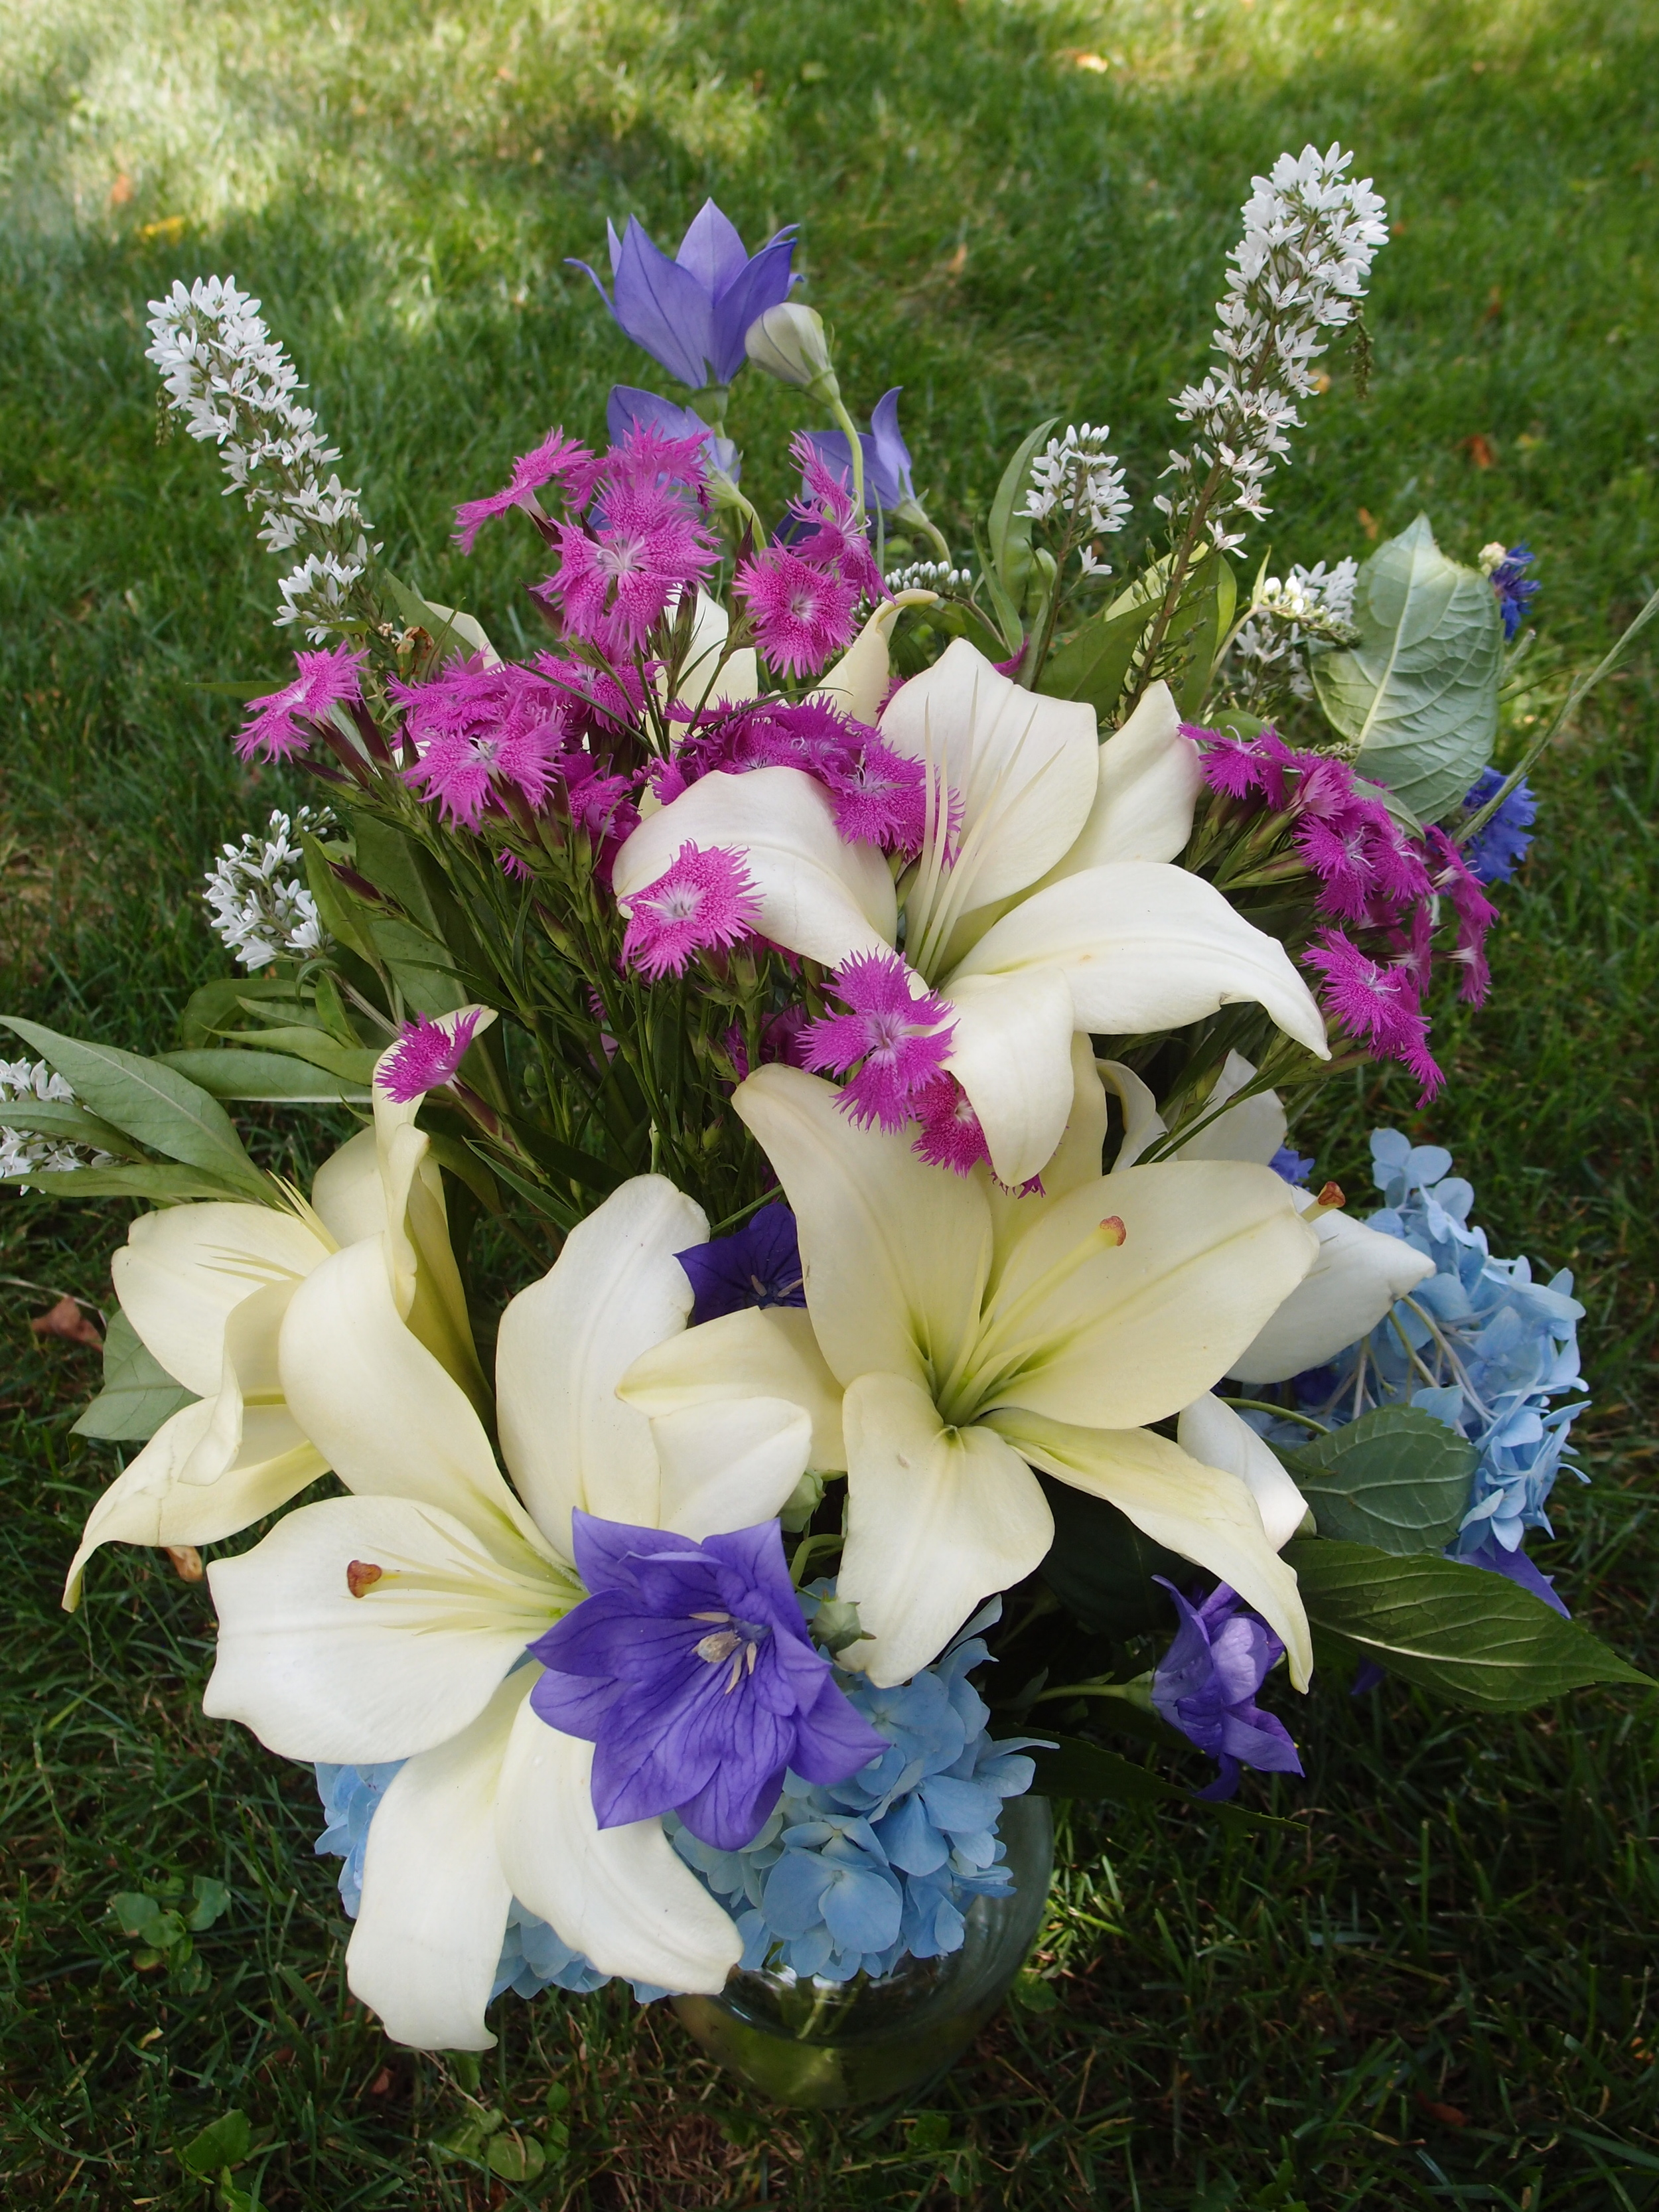 Lilies and other June flowers at Butternut Gardens